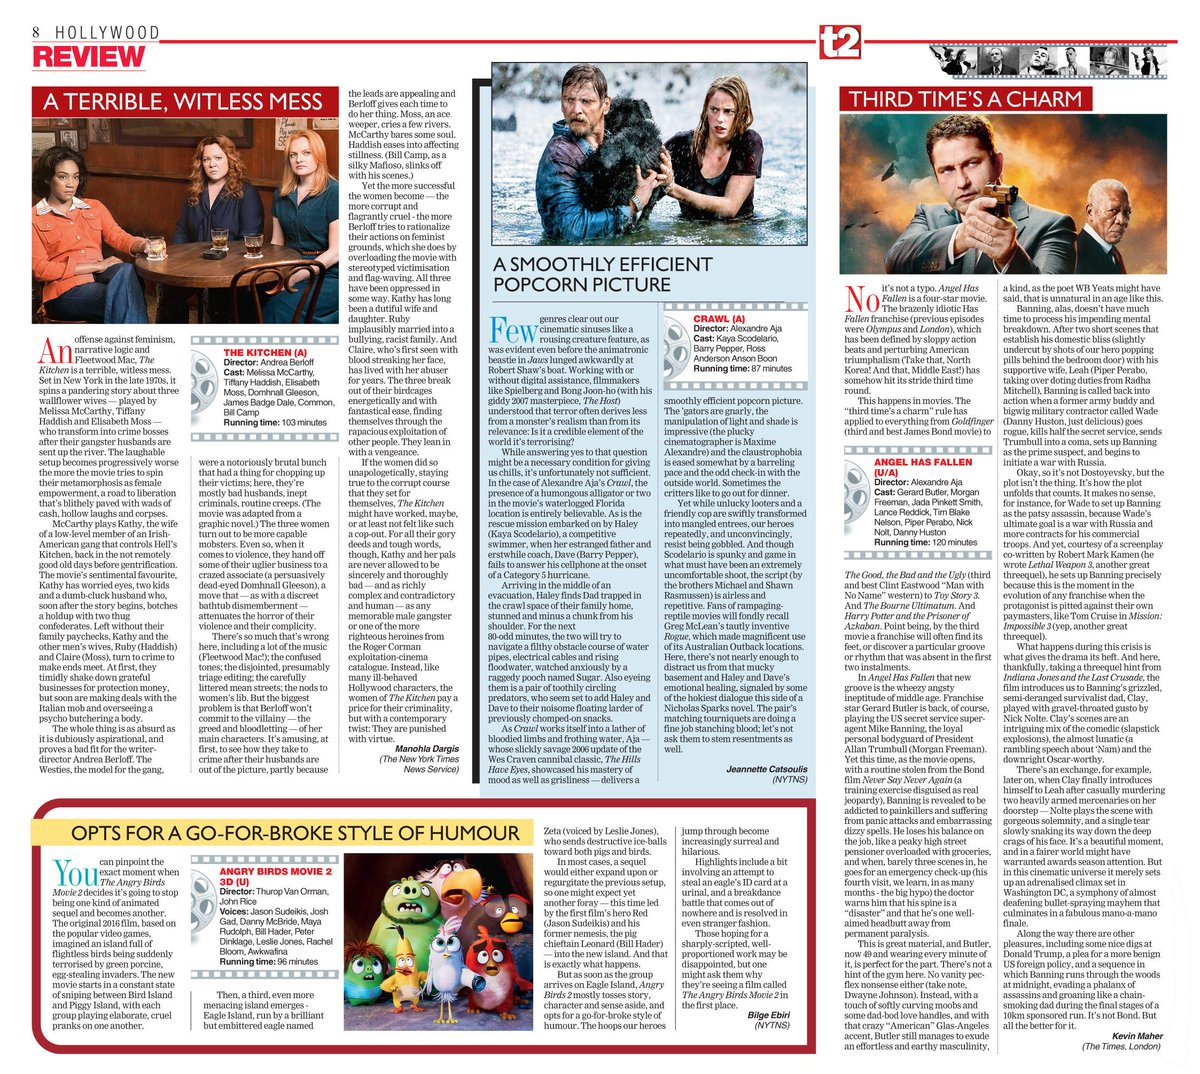 T2 On Twitter Here Are The Reviews Of The Kitchen Angry